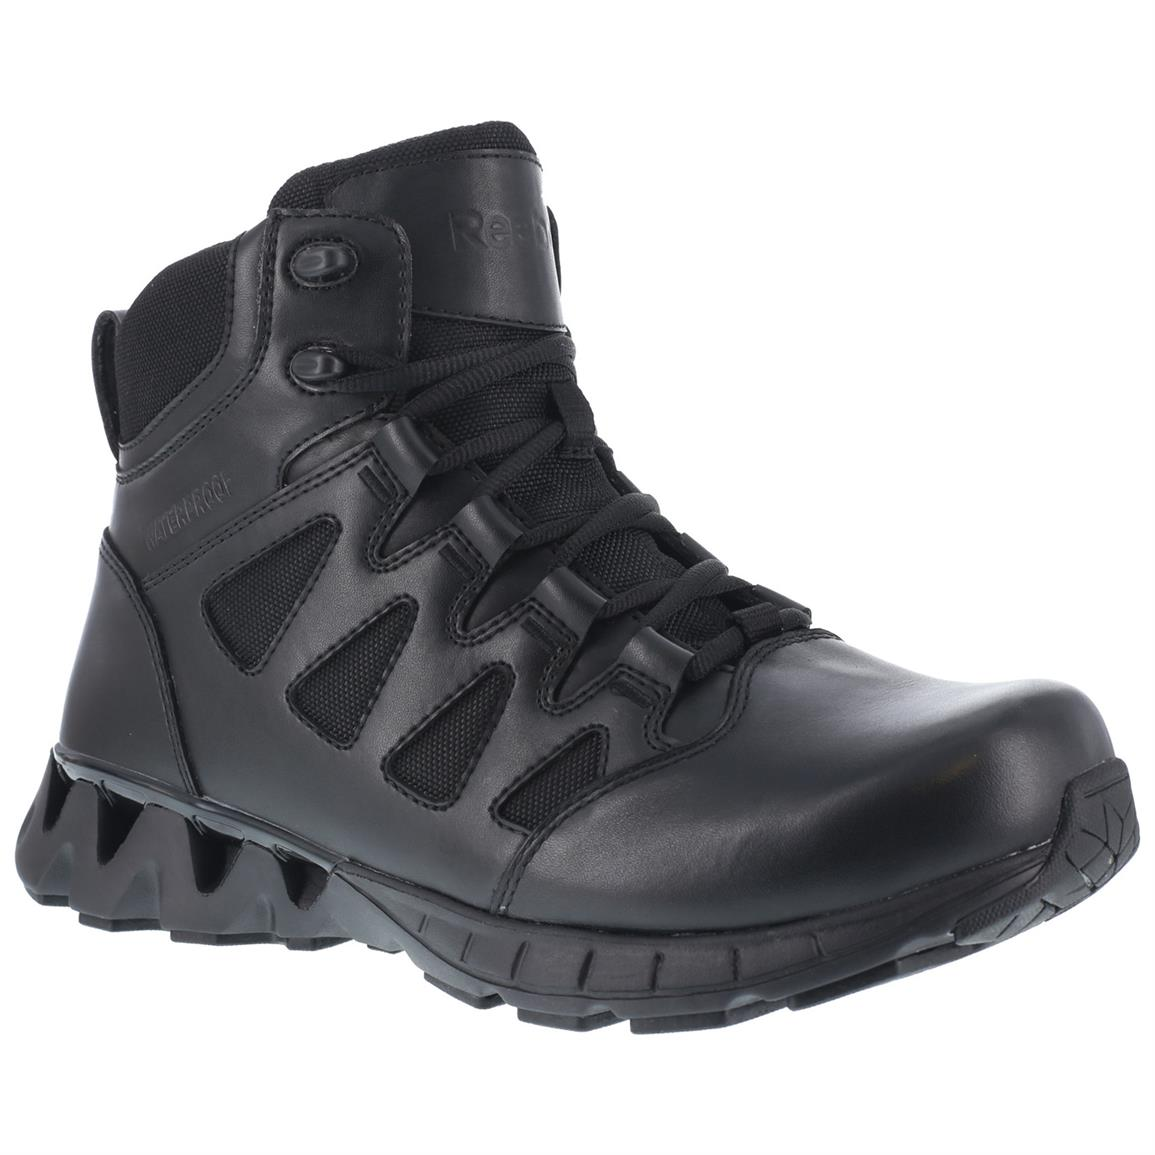 "Reebok Duty 6"" ZigKick SZ Women's Side Zip Tactical Boots, Waterproof, Black"